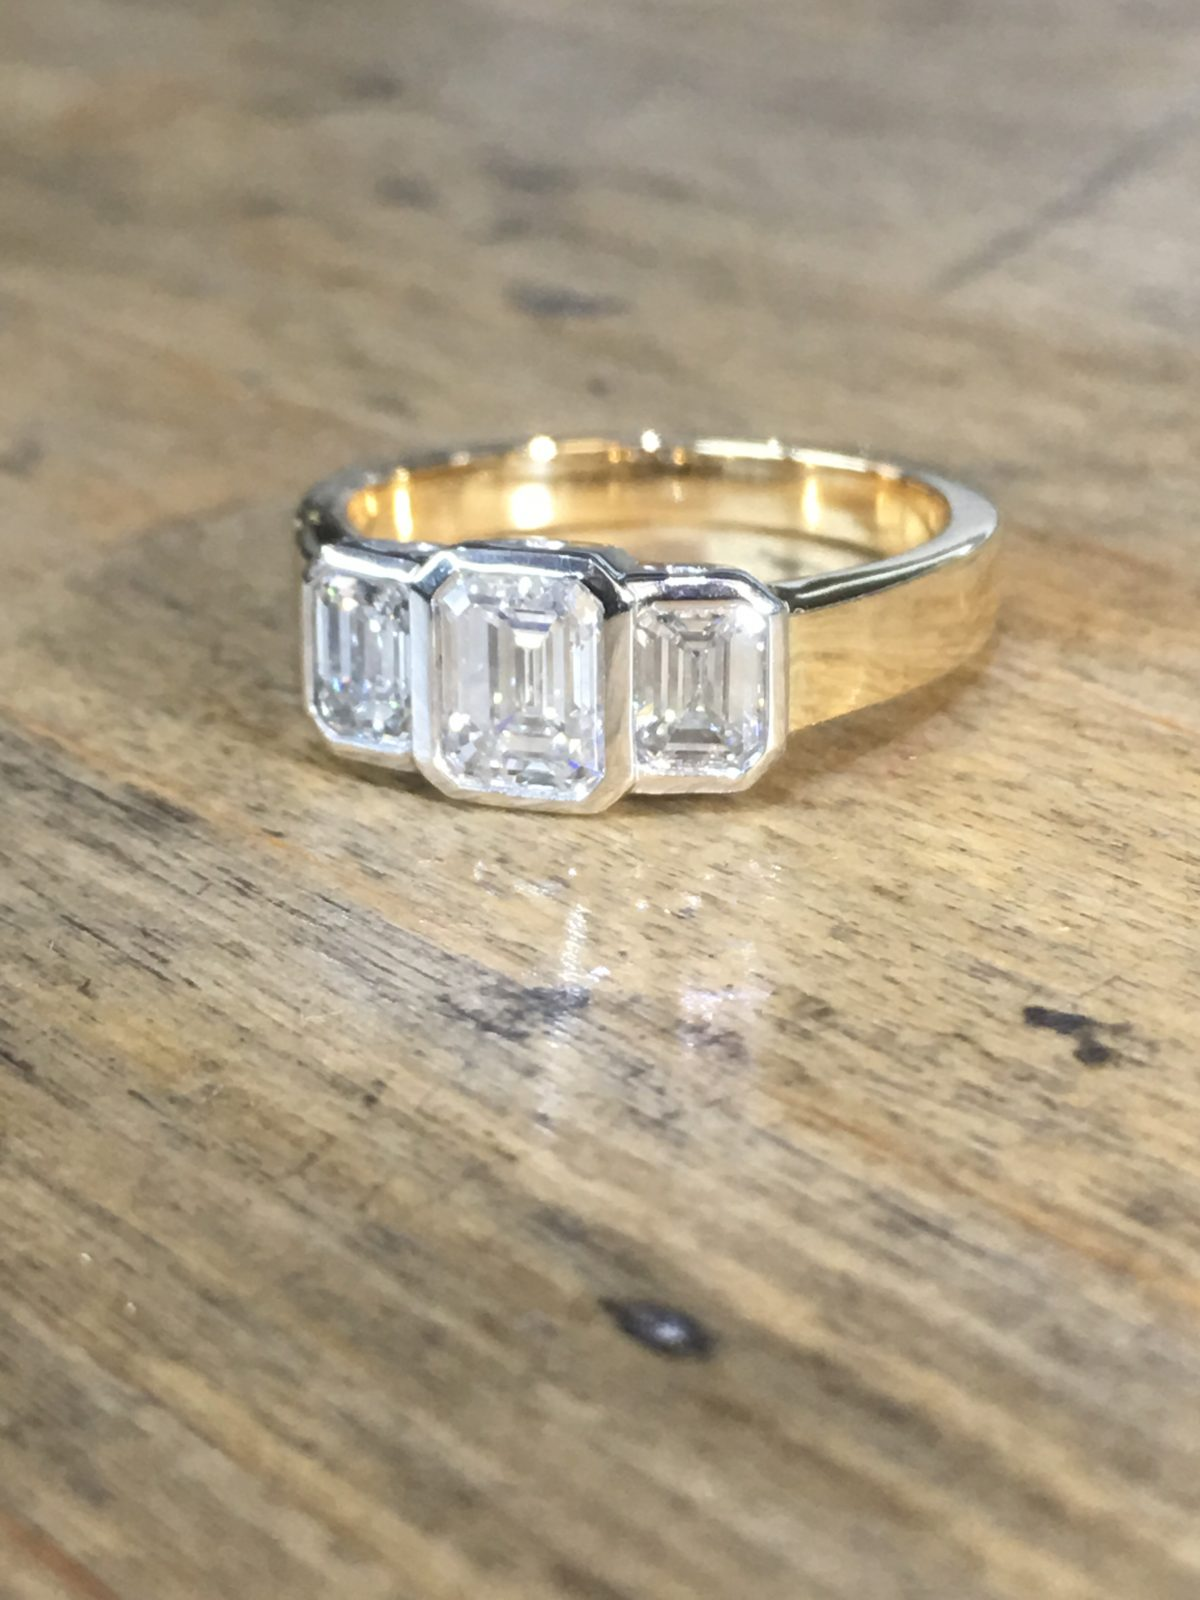 18ct platinum emerald cut diamond engagement ring